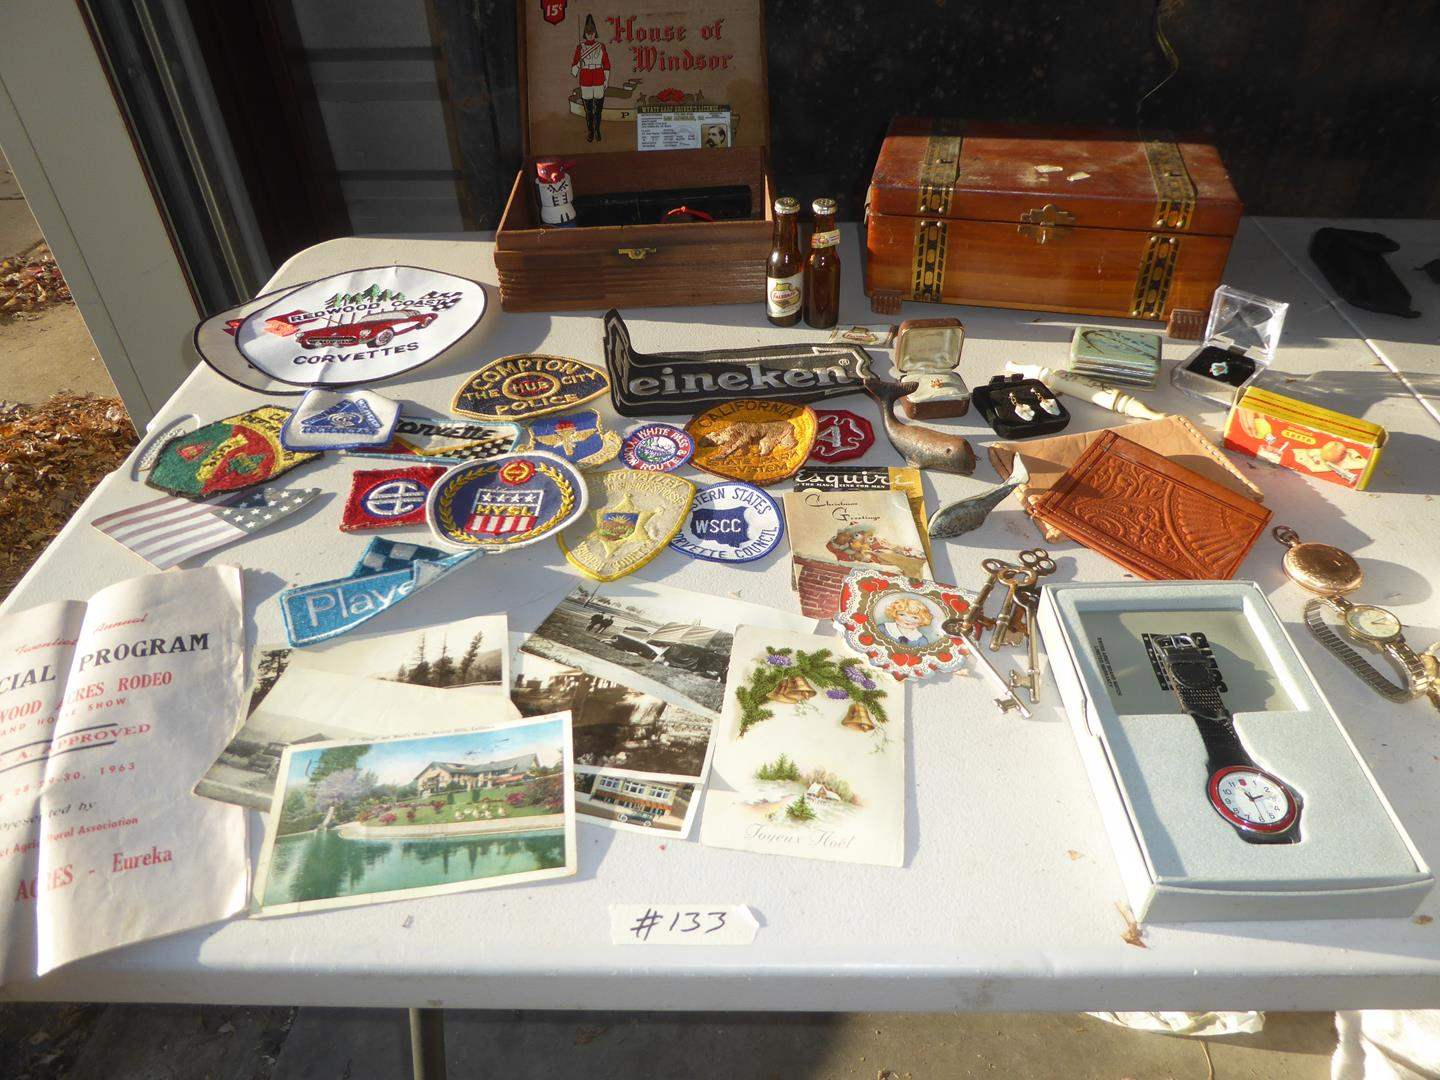 Lot # 133 - Fun Patches, Skeleton Keys, Razors, Wristwatches, Pocket Watch & Other Vintage Items (main image)